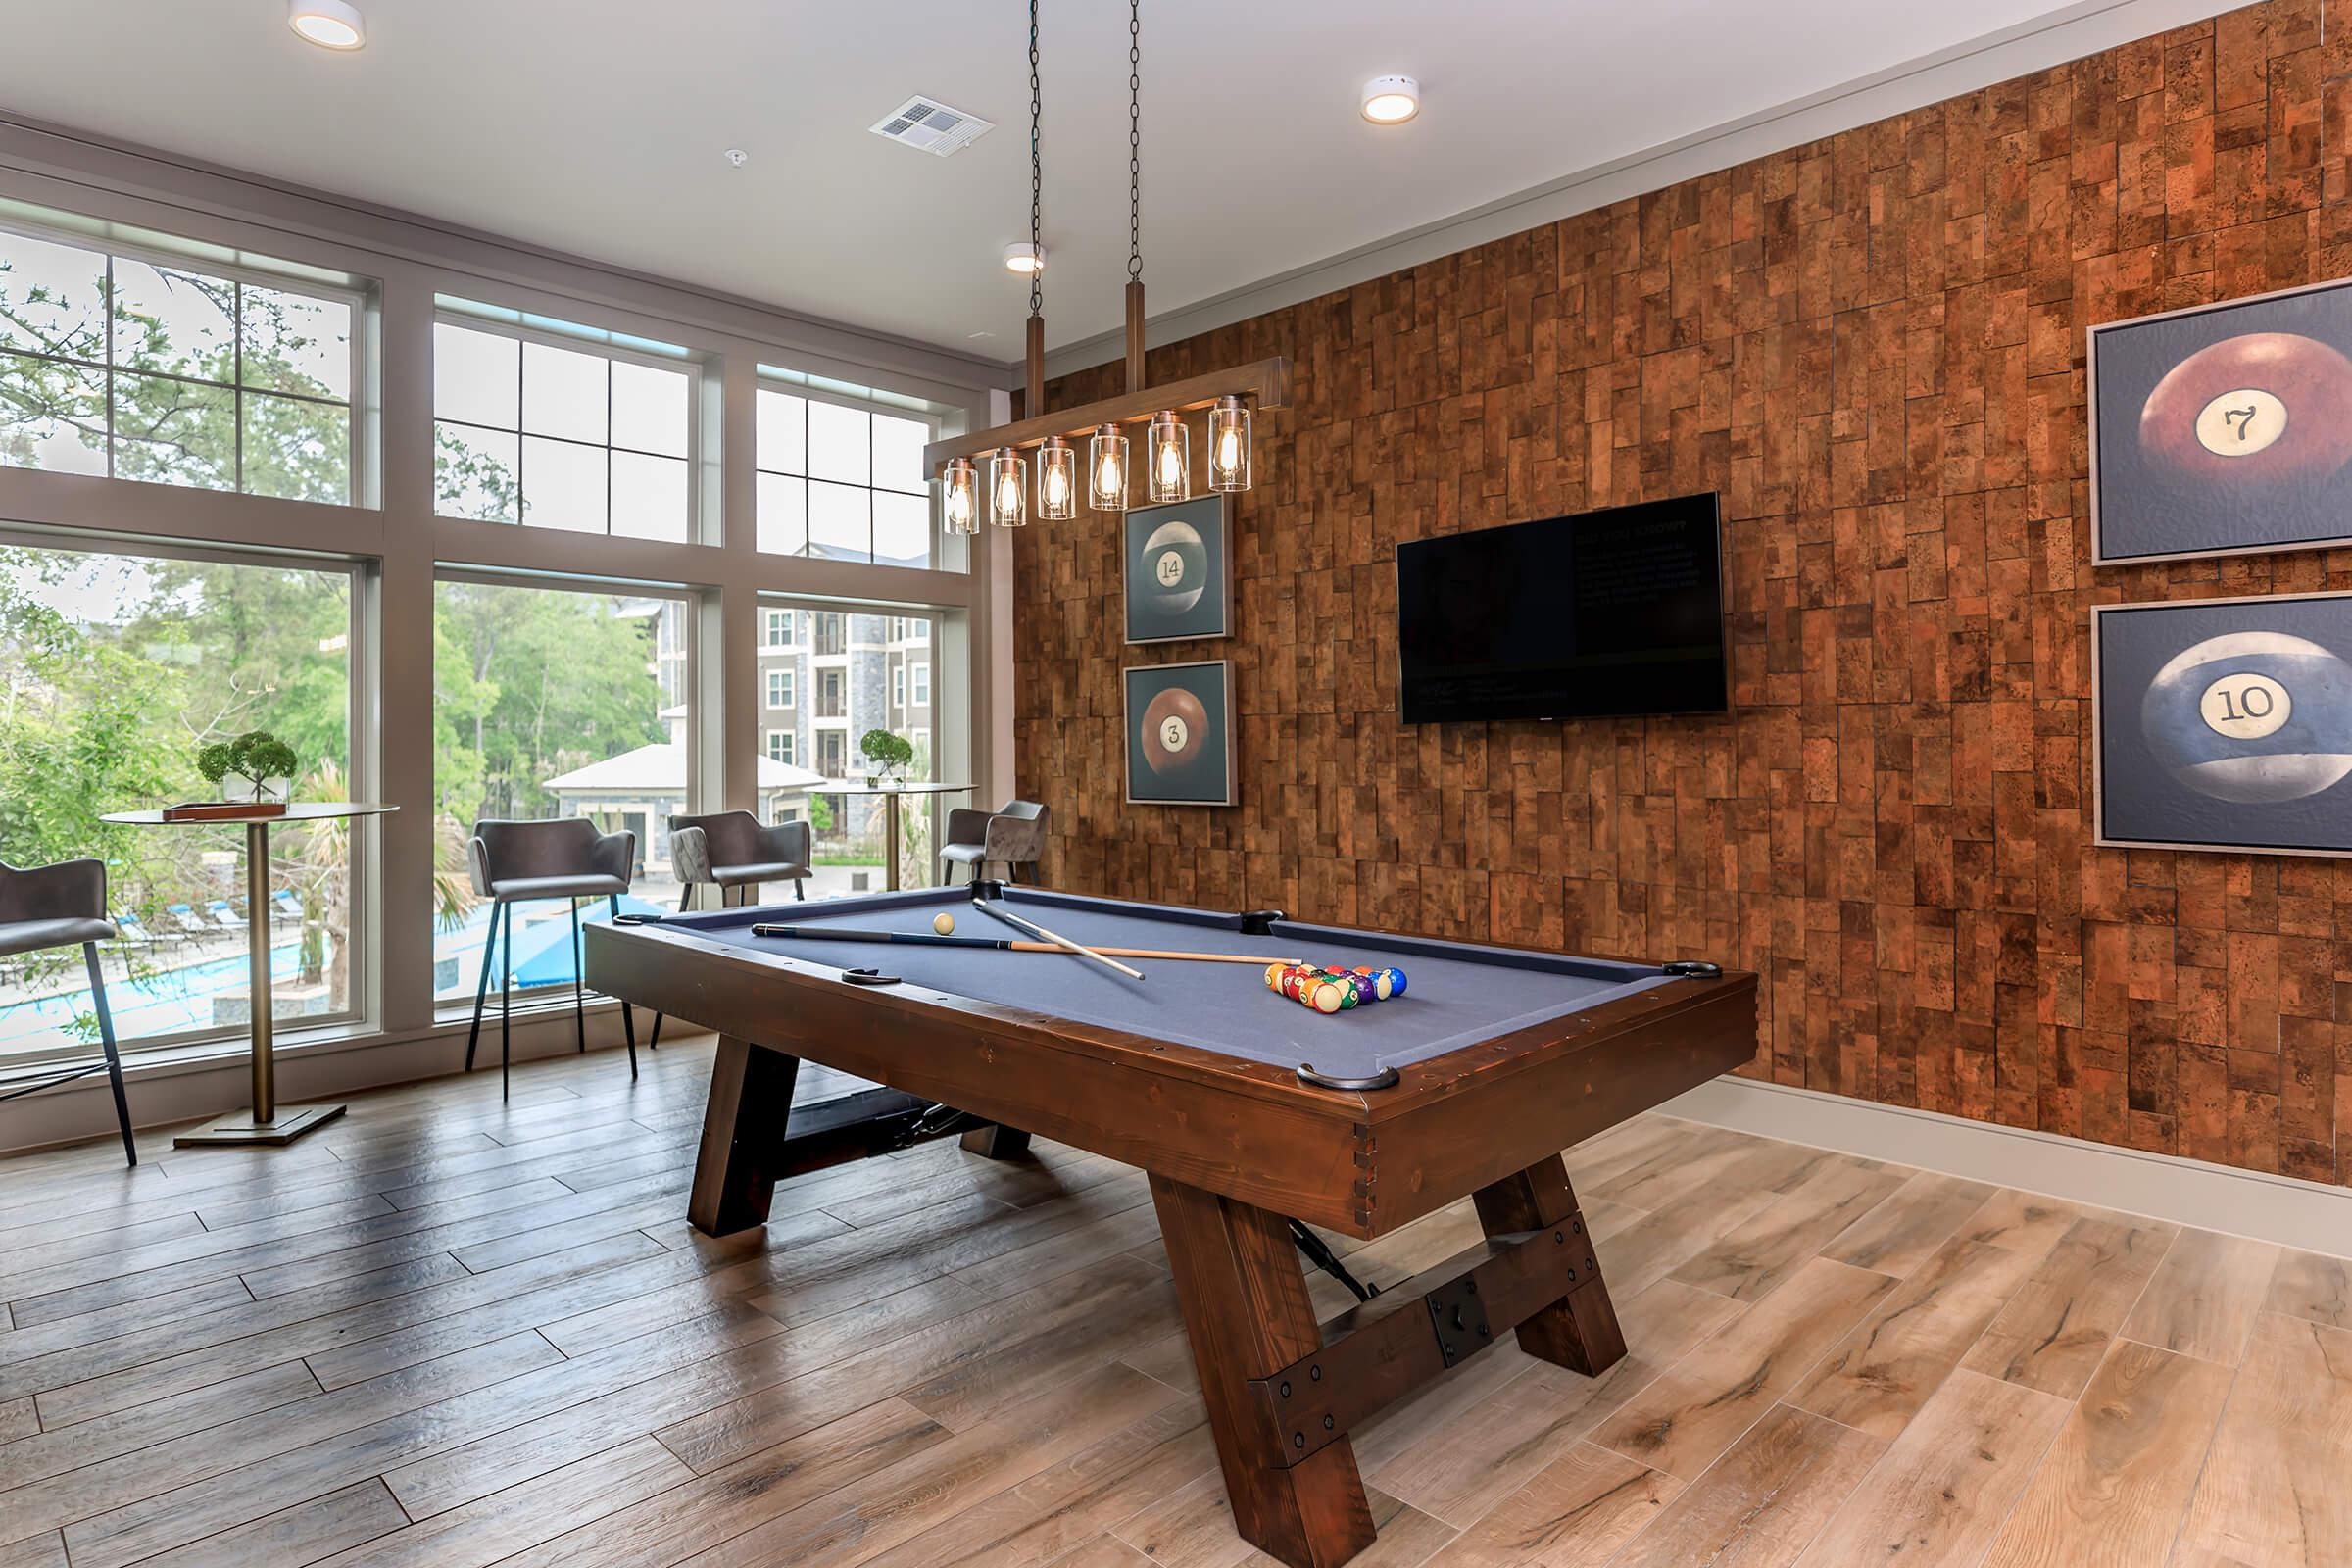 Billiards area of our upscale clubhouse with large windows and seating.